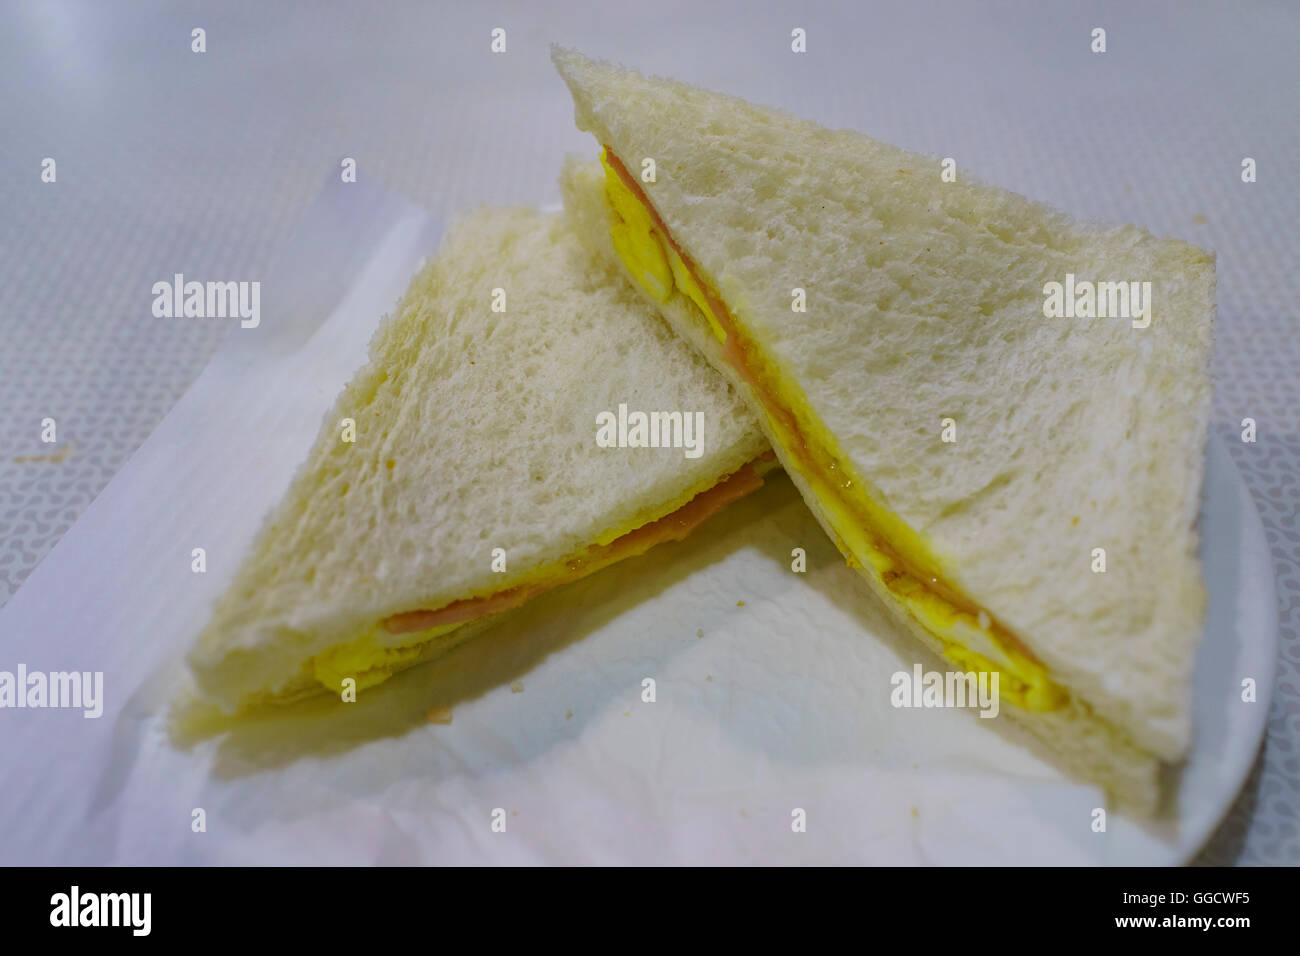 Ham and Egg Sandwich is one of the most popular and famous snacks in Macau. - Stock Image